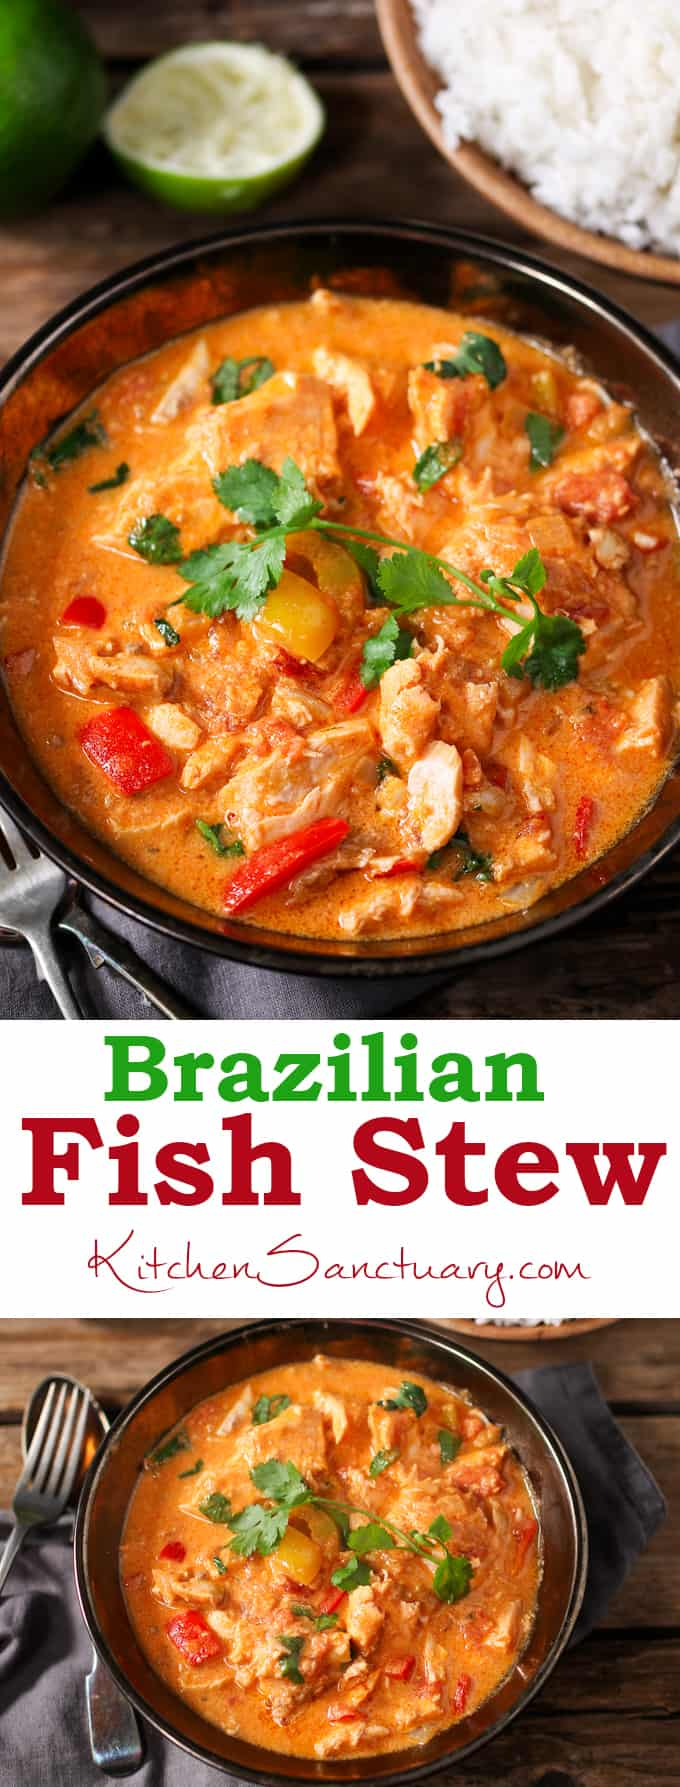 in coconut stew fragrant fish stew fish in coconut stew fish ball ...